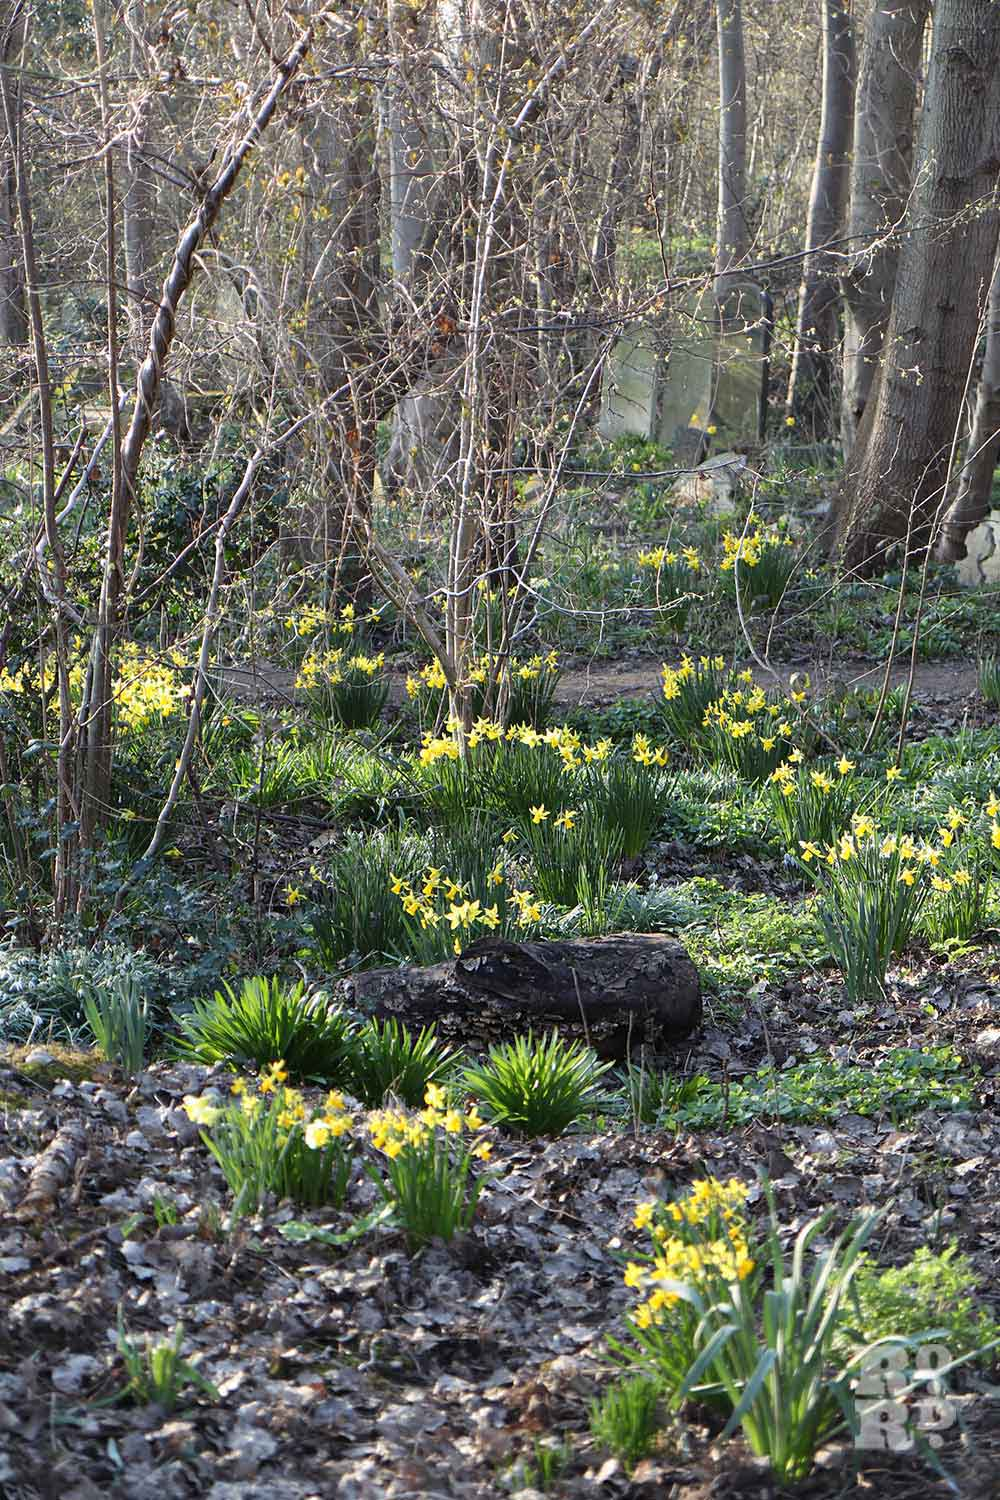 Daffodils among the trees, Tower Hamlets Cemetery Park, spring flowers, 2021